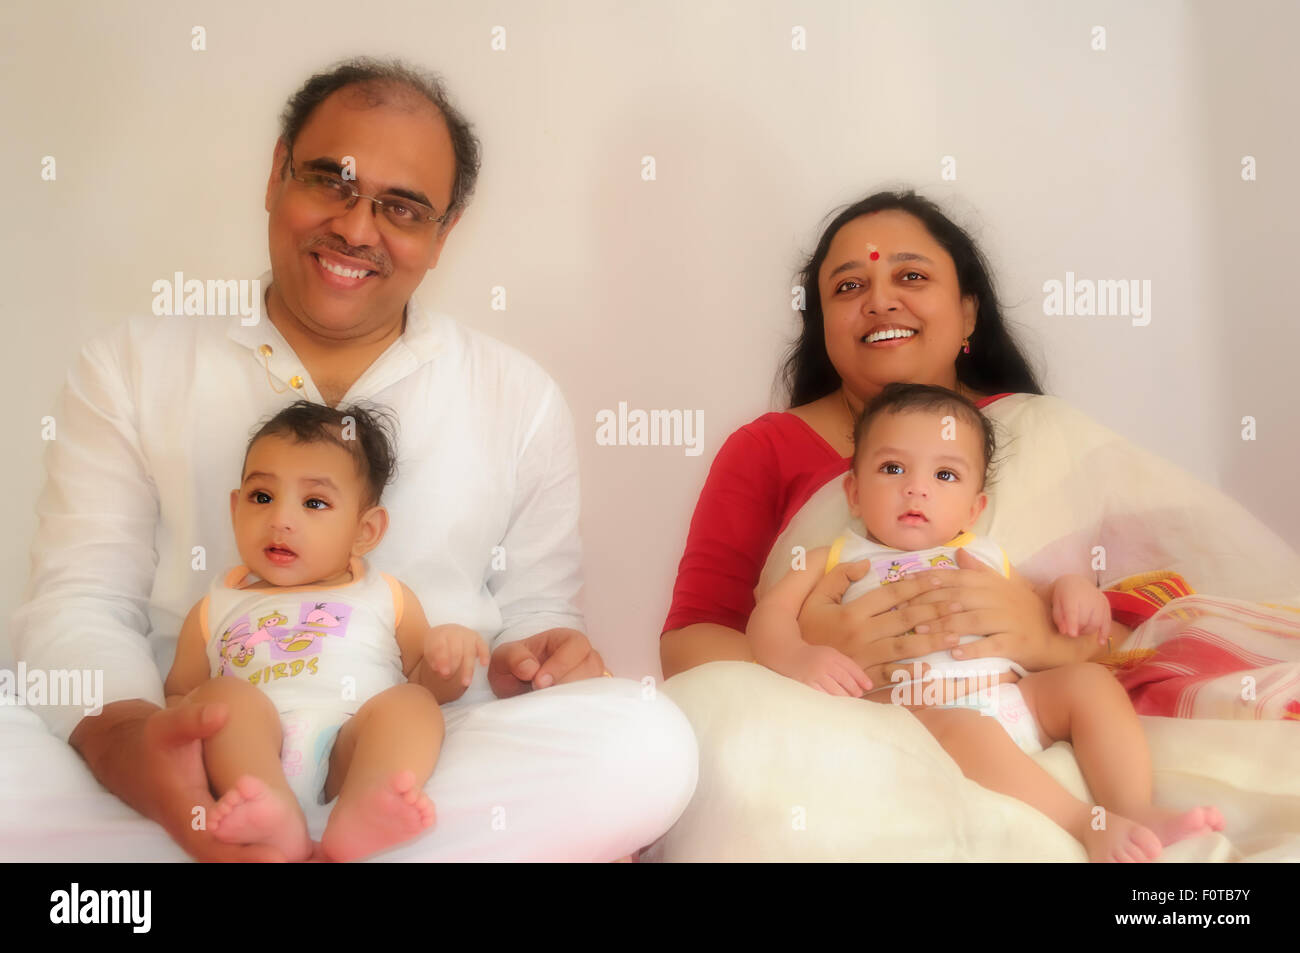 Portrait of a happy family of parents with twin baby boys showing bond love affection and togetherness with copy space